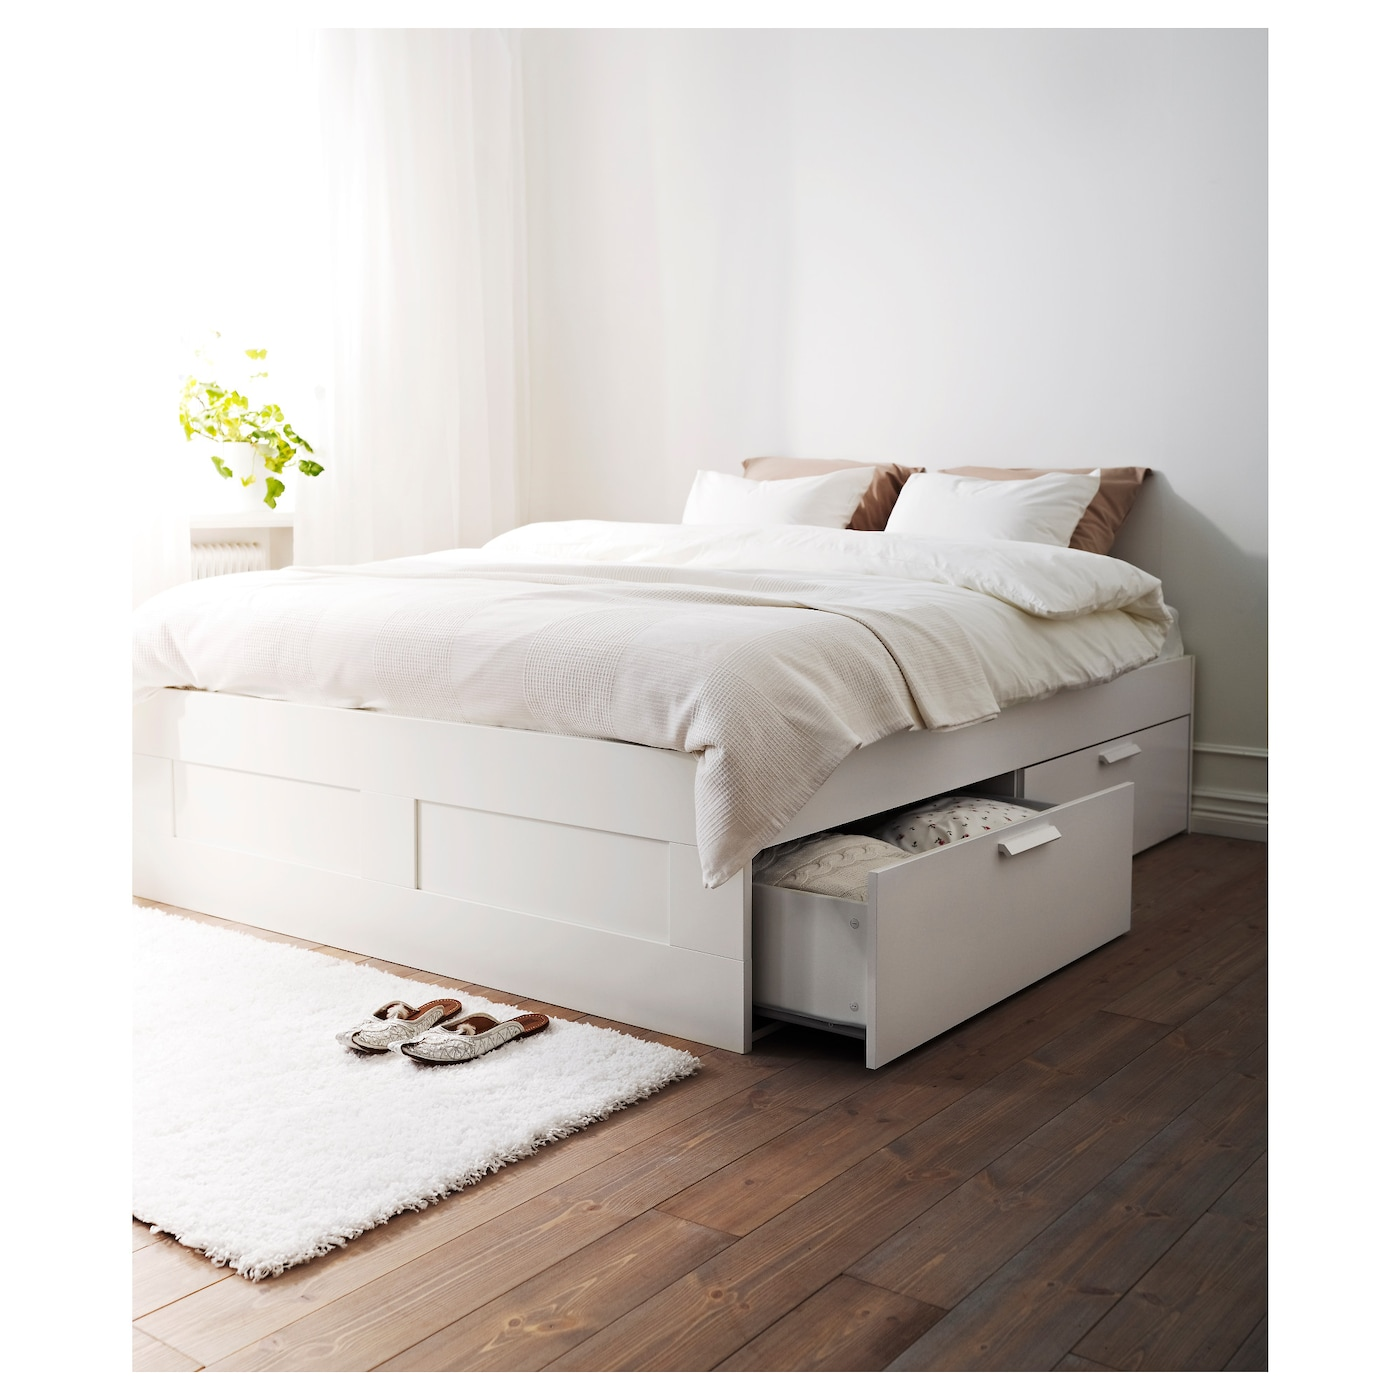 base ideas full frame drawers leather twin headboard queenithhite platform ornament with storage and underneath picture bed white colorful